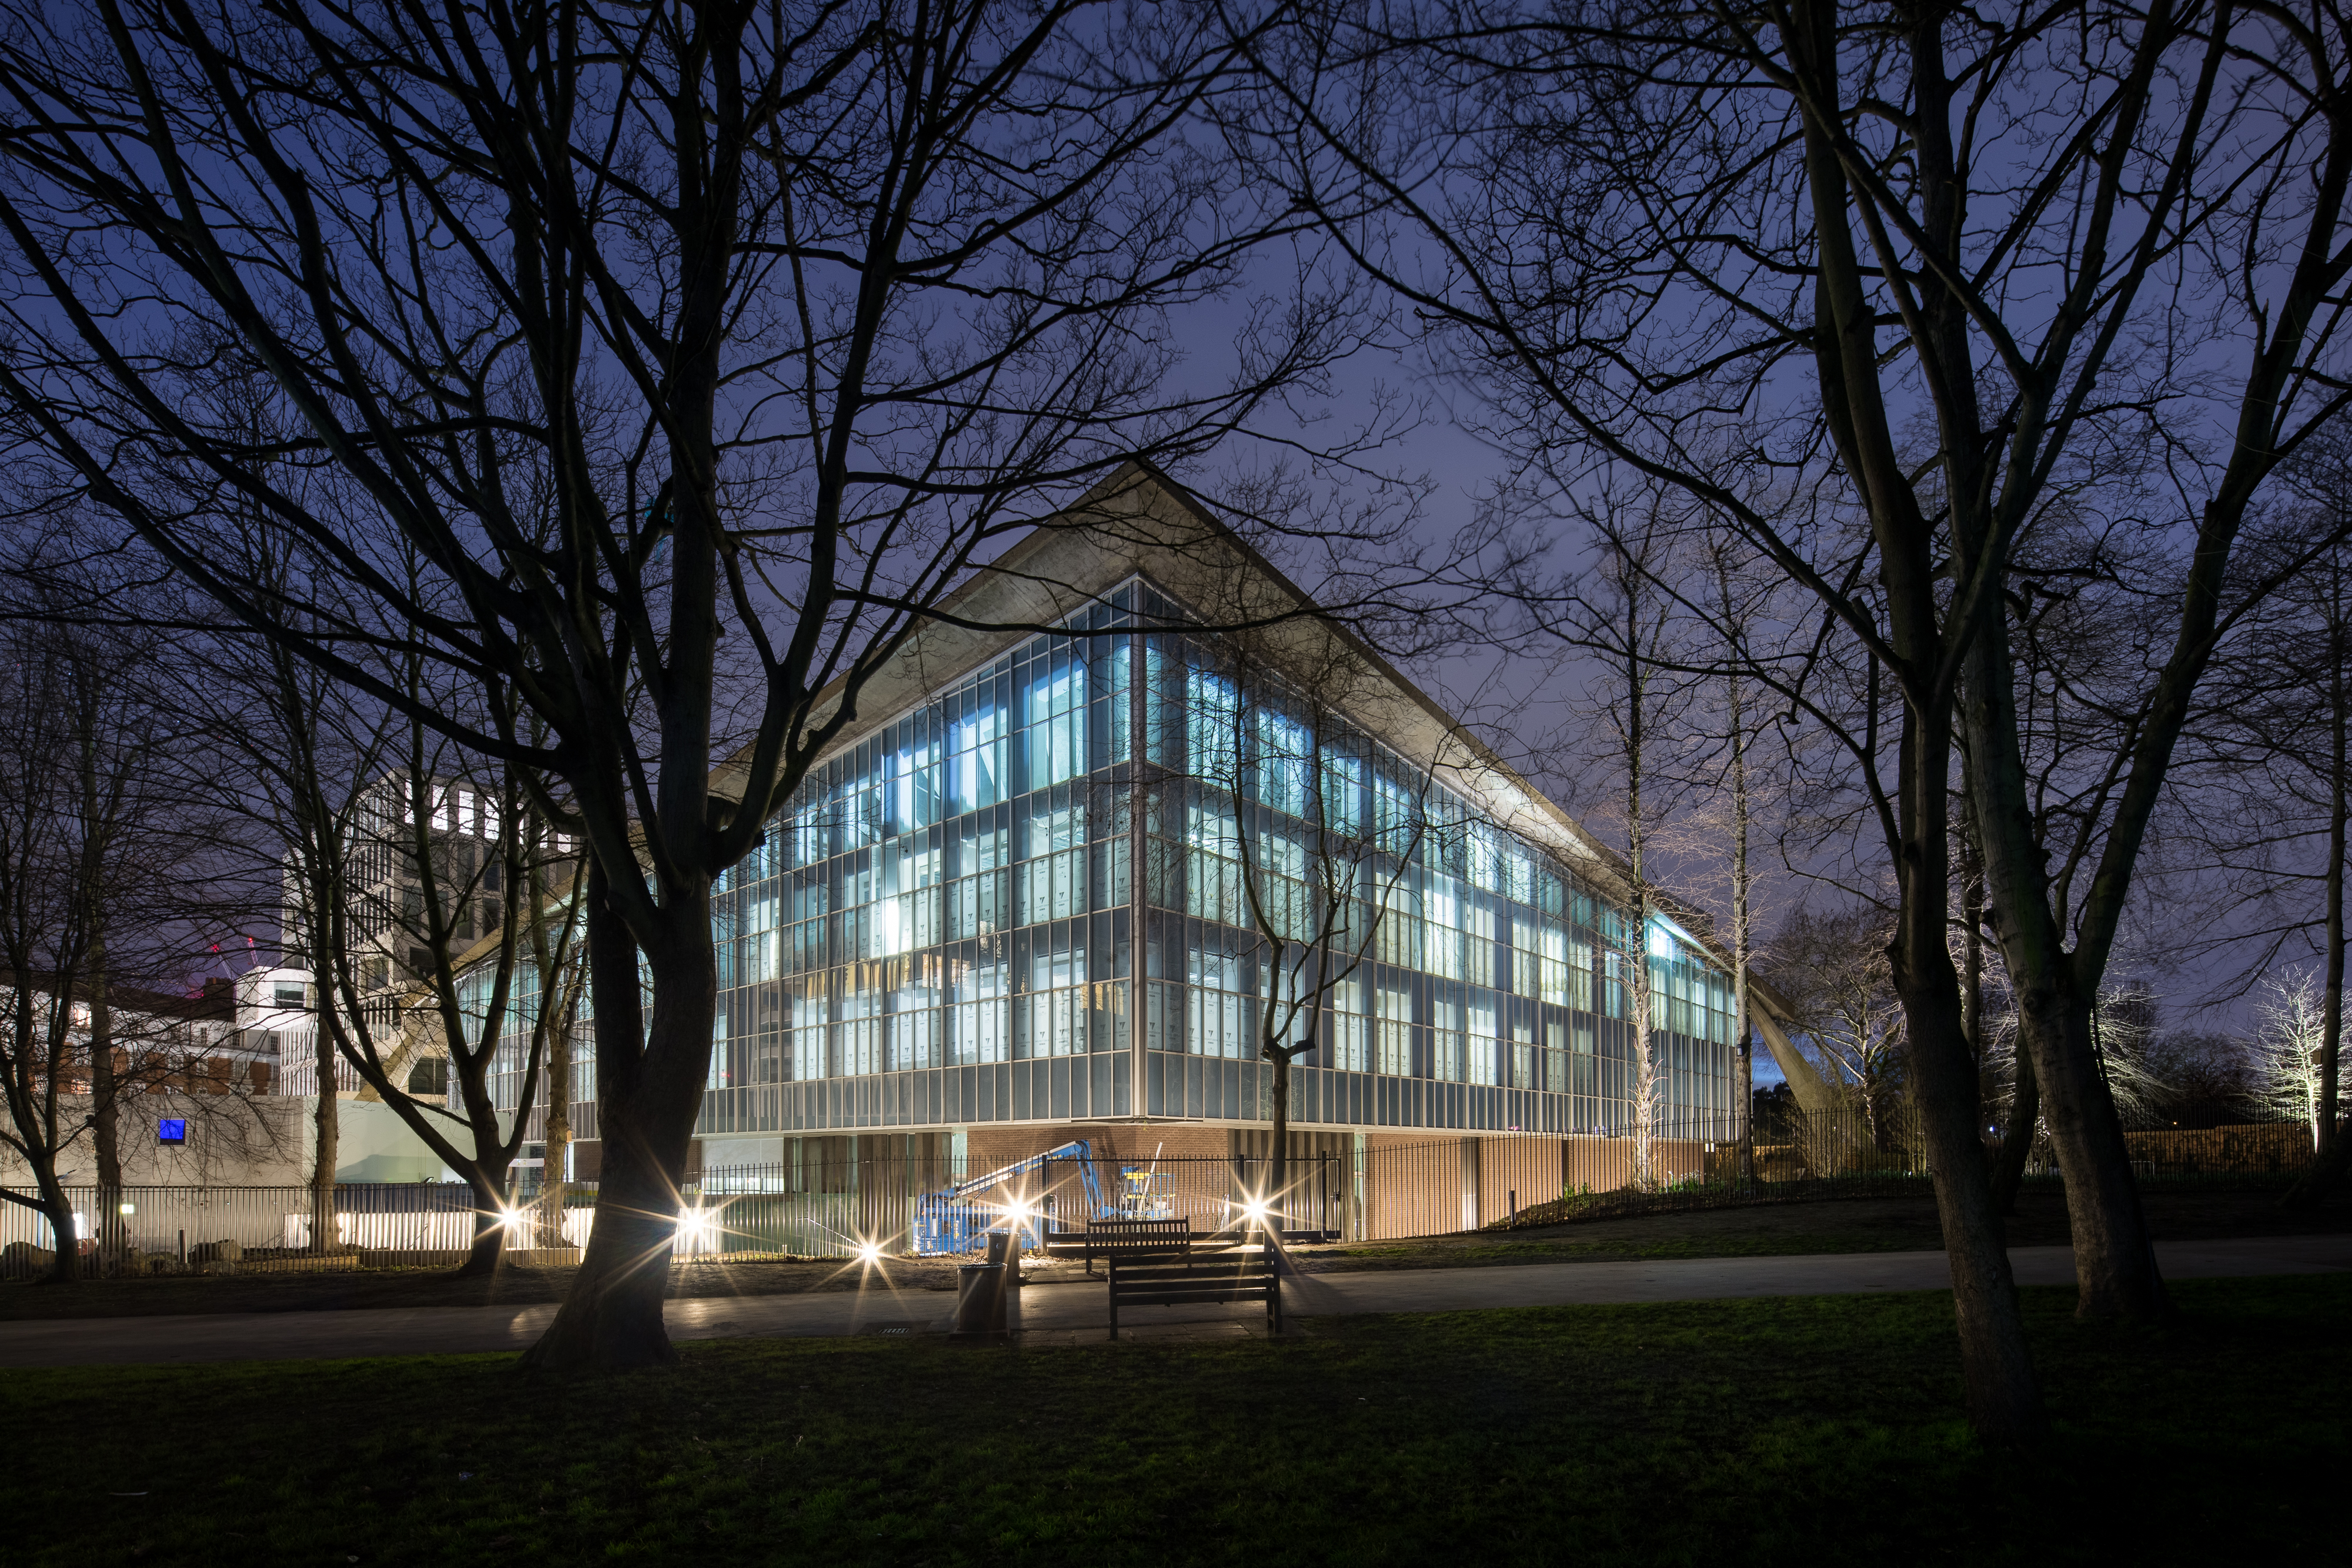 An angular glass and concrete building is lit up, at night, surrounded by trees.